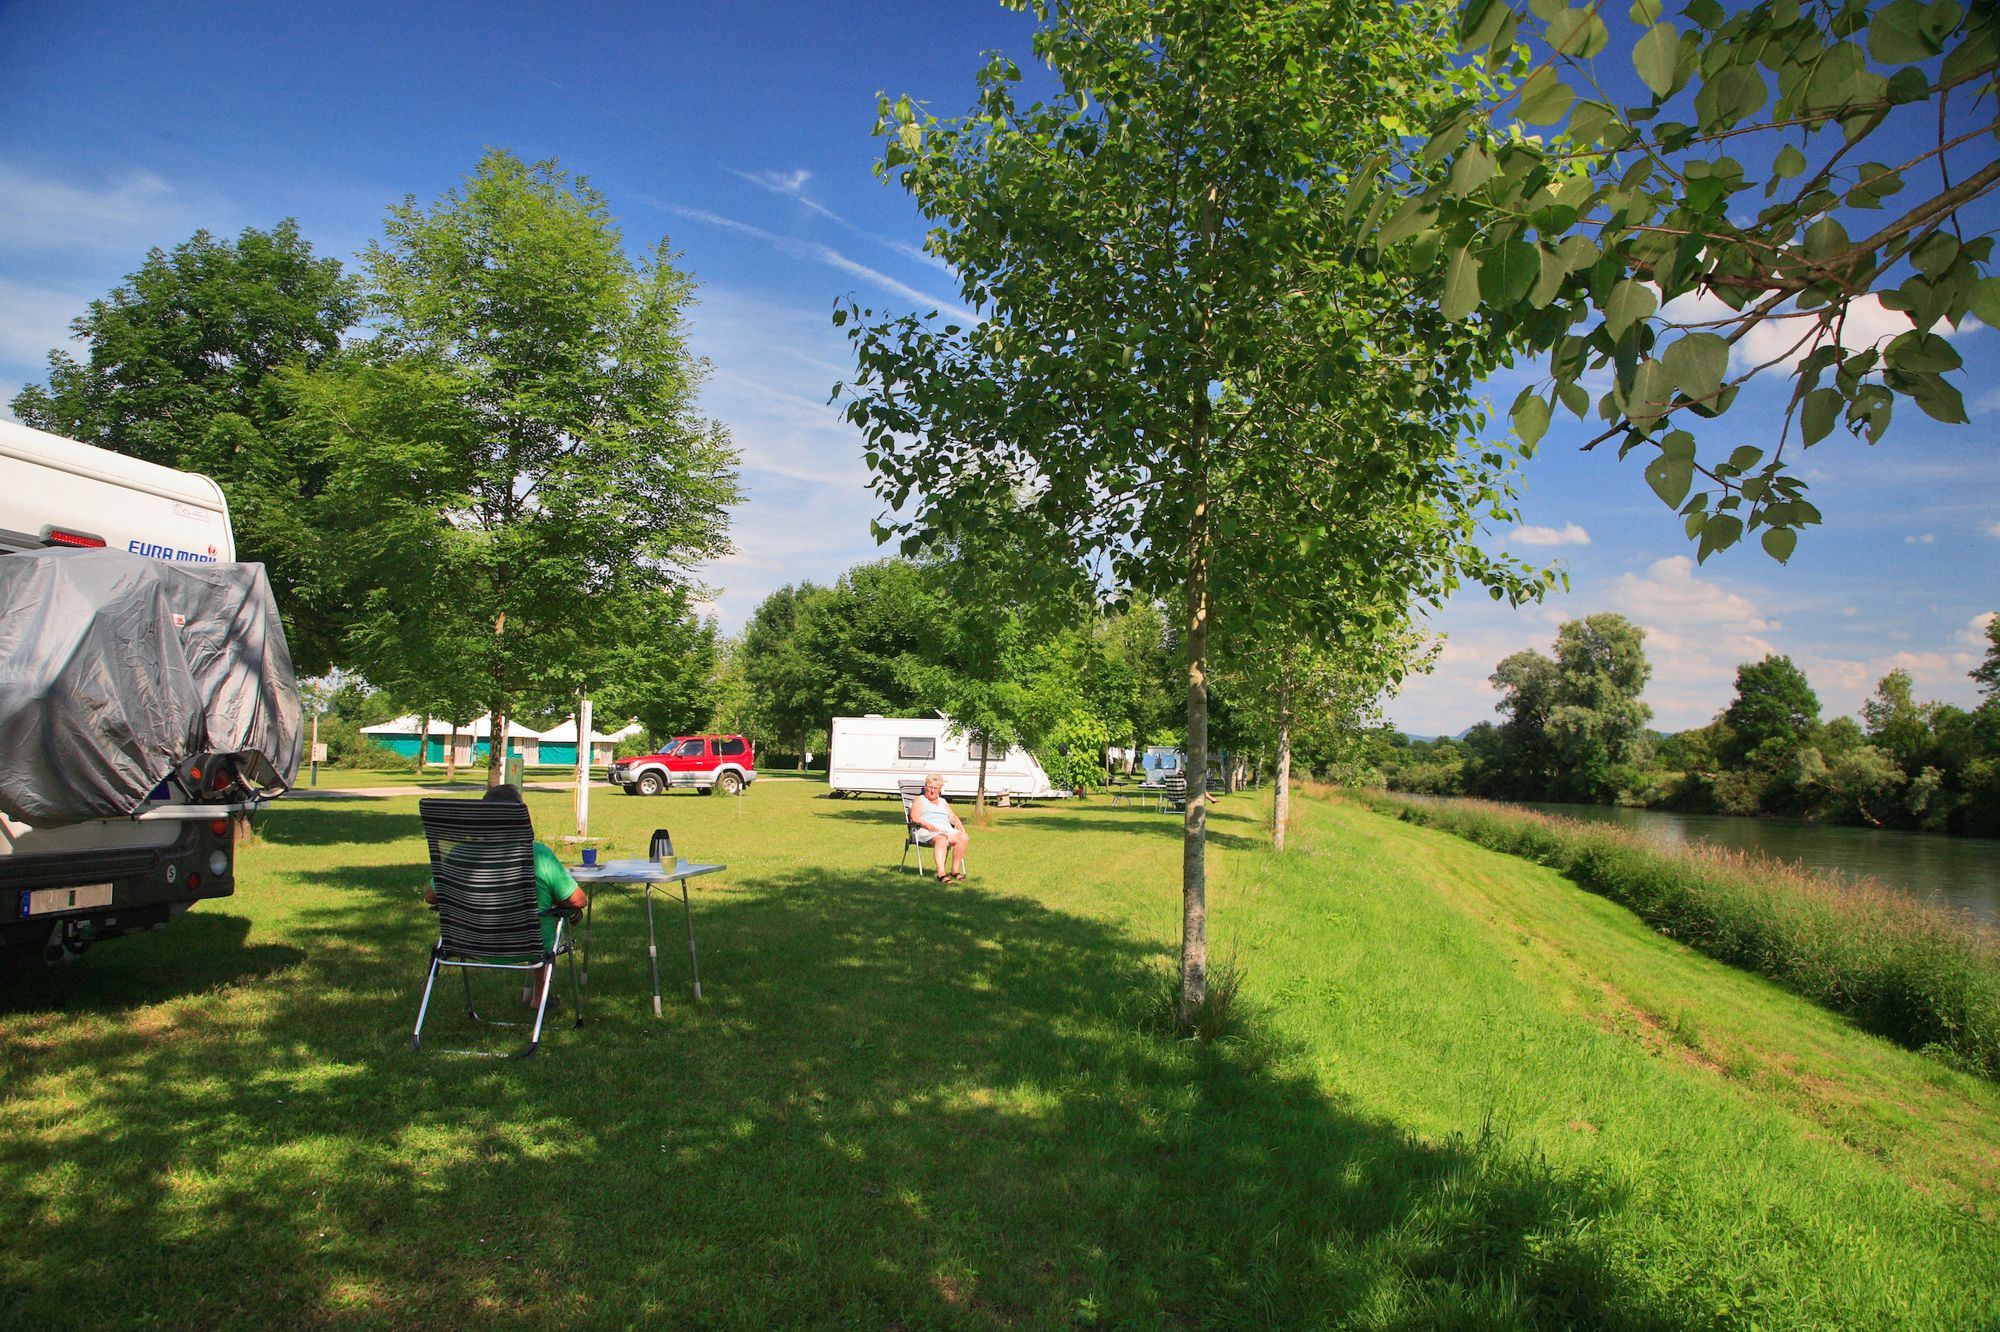 Active family camping and glamping on the banks of the River Loue with heaps of facilities on offer.